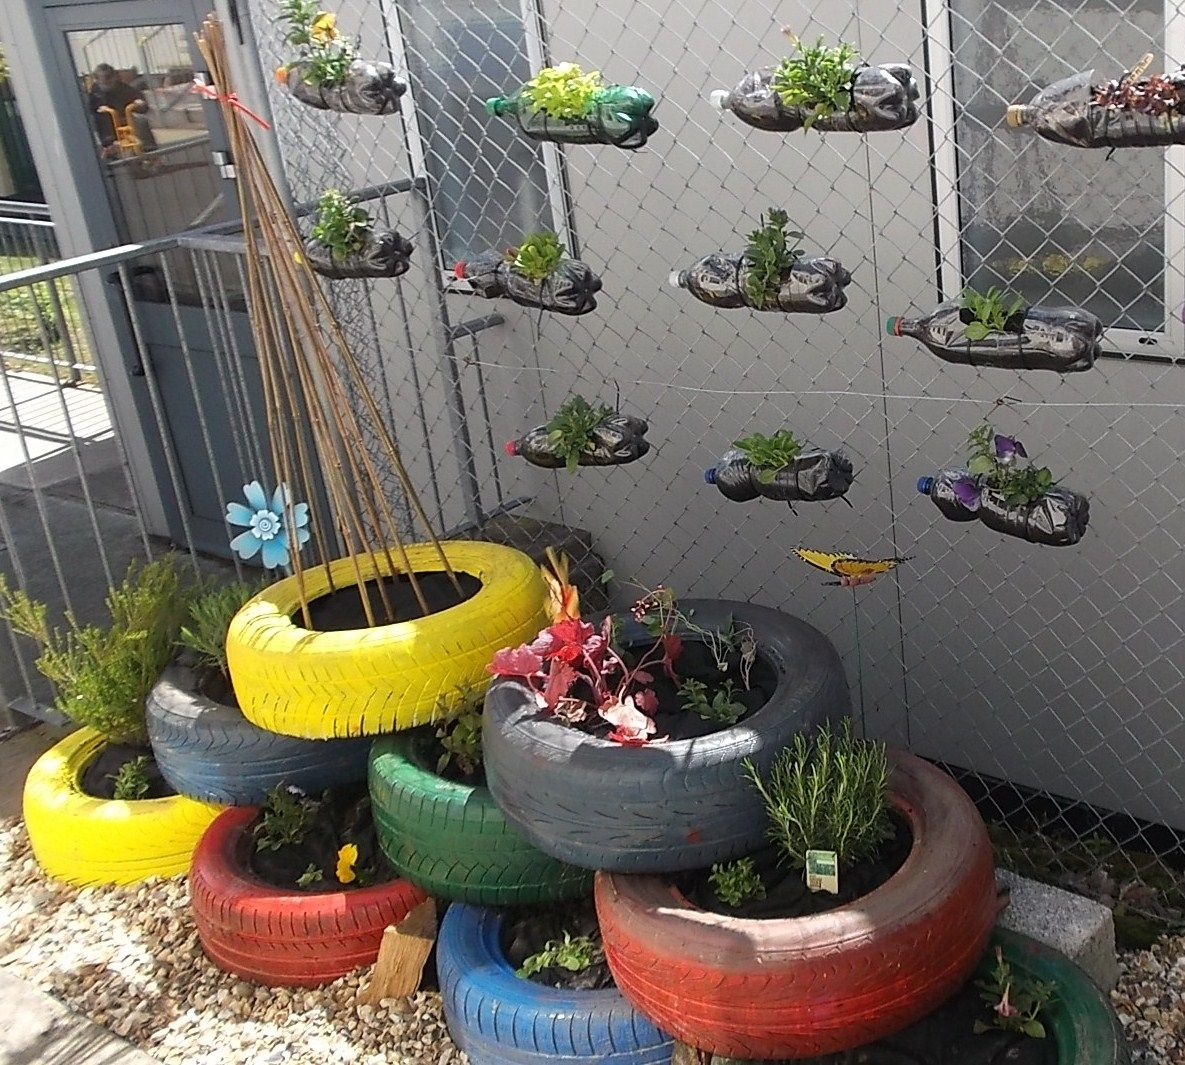 Brilliant Ideas For Repurposing Containers Recycling And Planting At Little Angels School